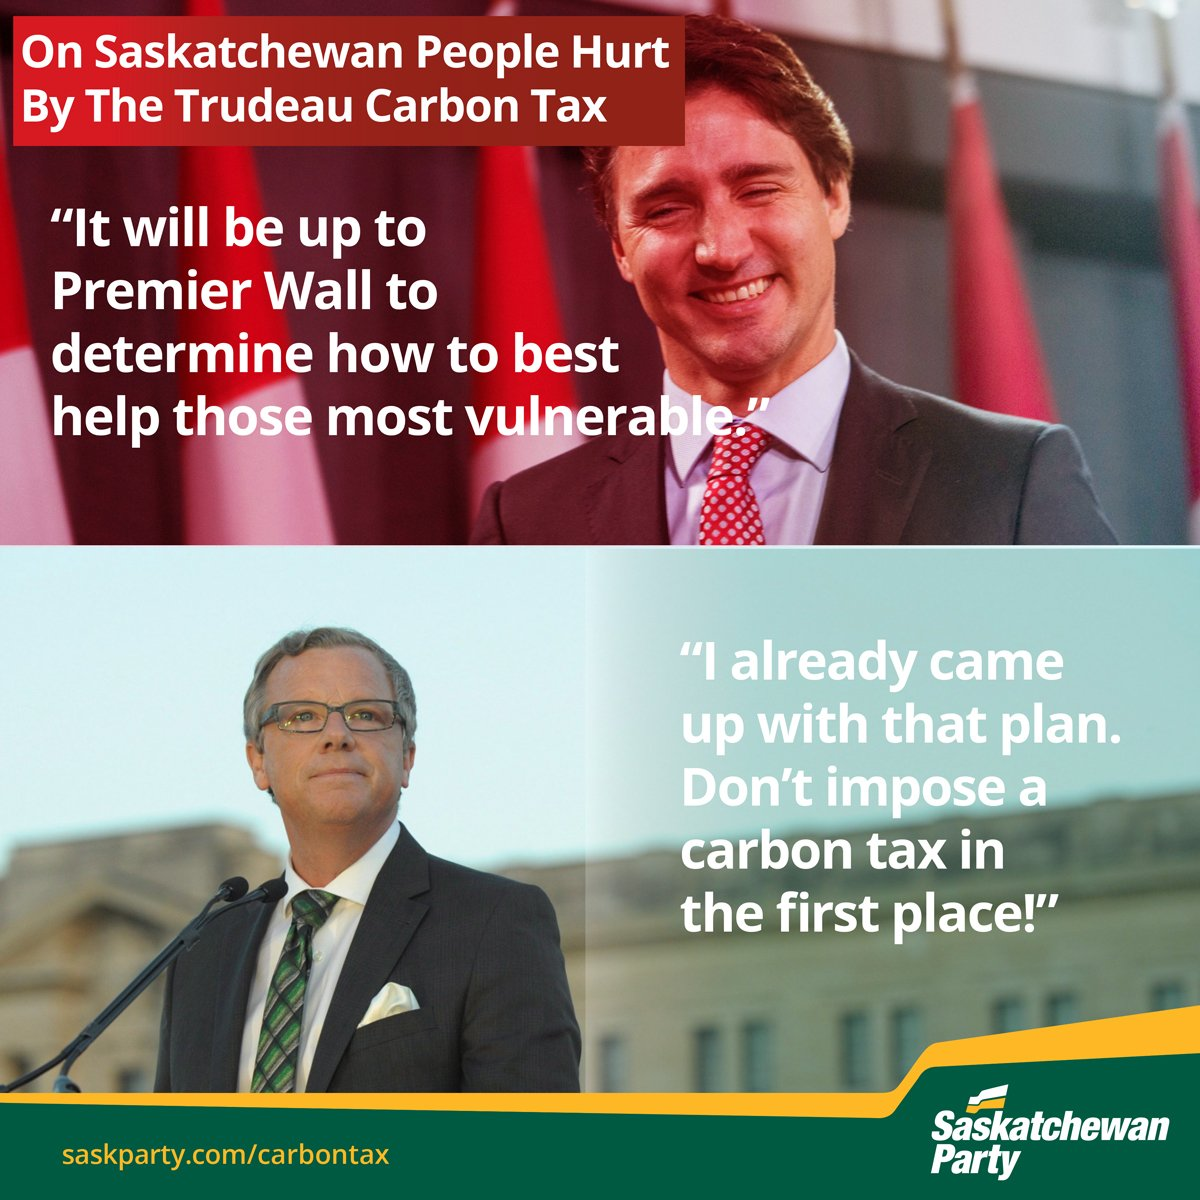 .@PremierBradWall's plan to help SK people harmed by Trudeau carbon tax..don't have a carbon tax.   Retweet if you support this plan #skpoli